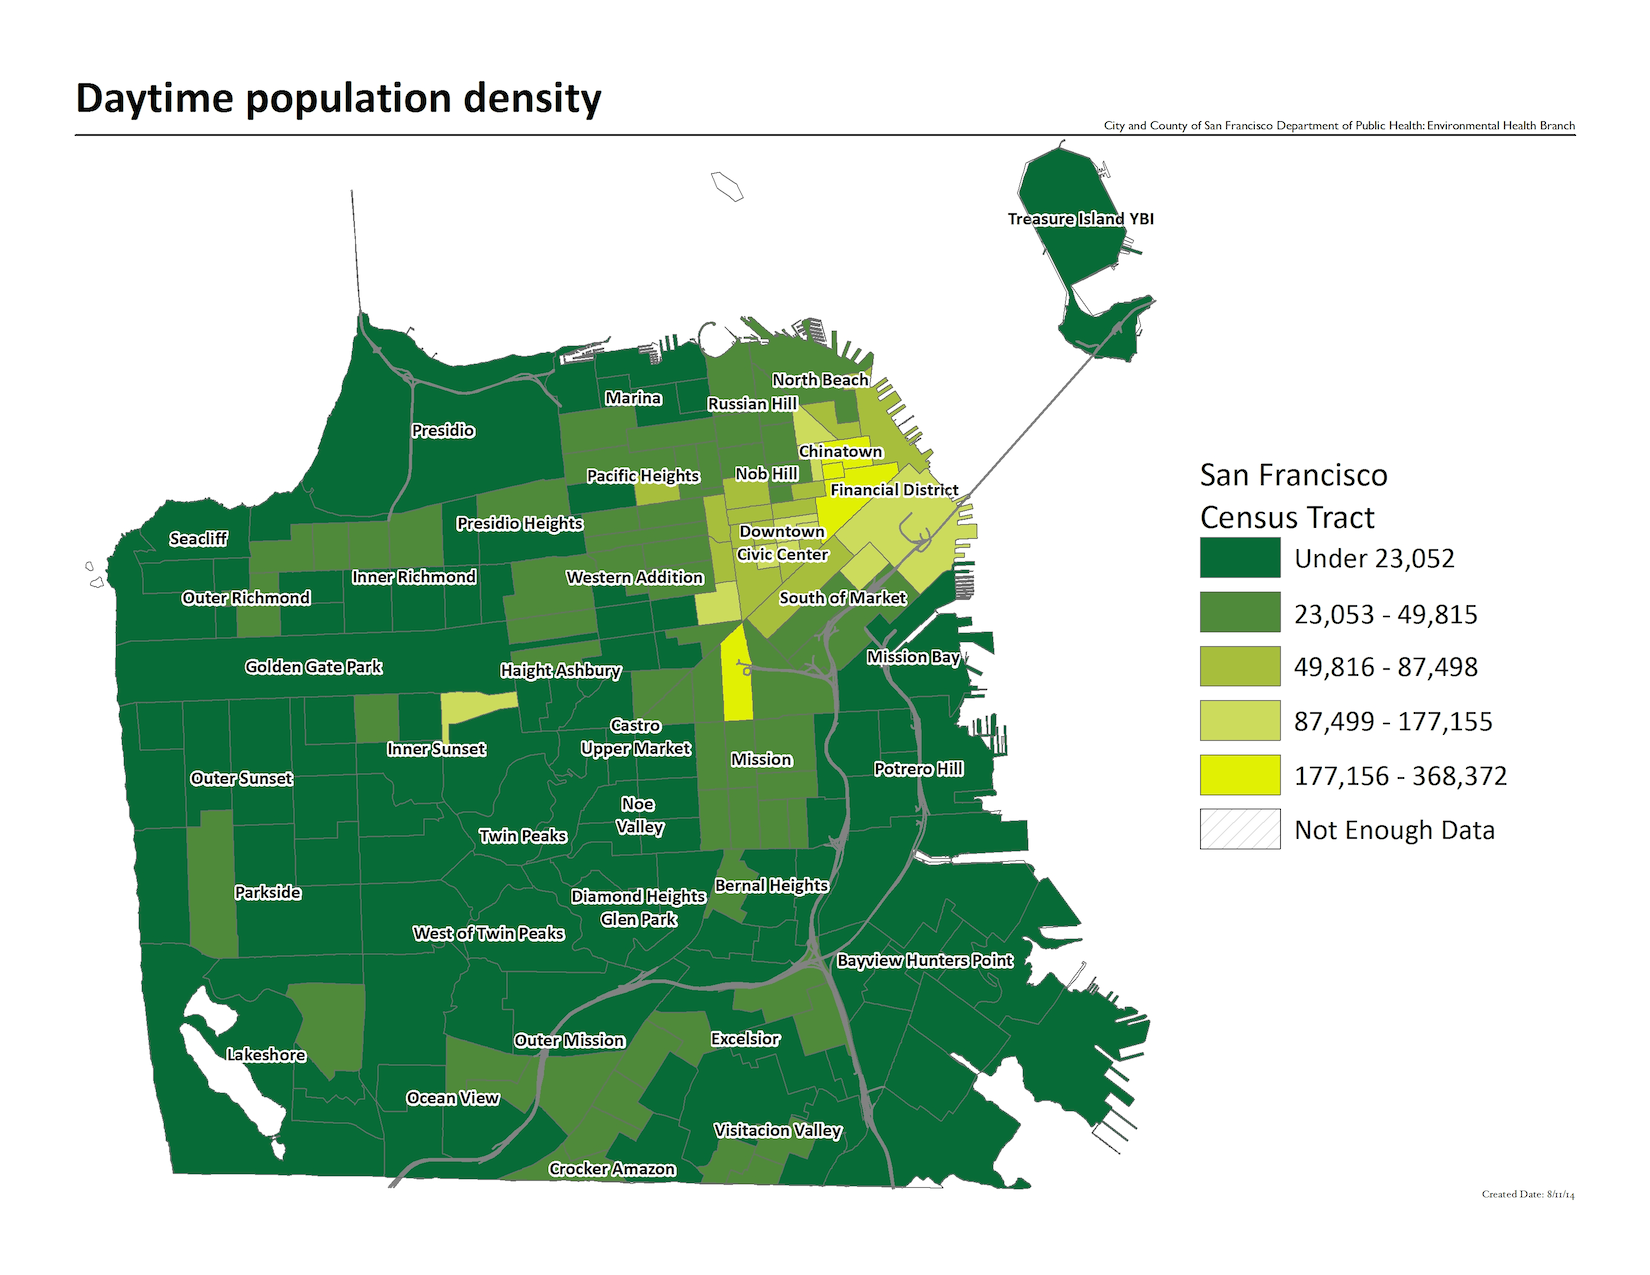 Map of daytime population density by census tract. Downtown / Civic Center the most dense neighborhood.